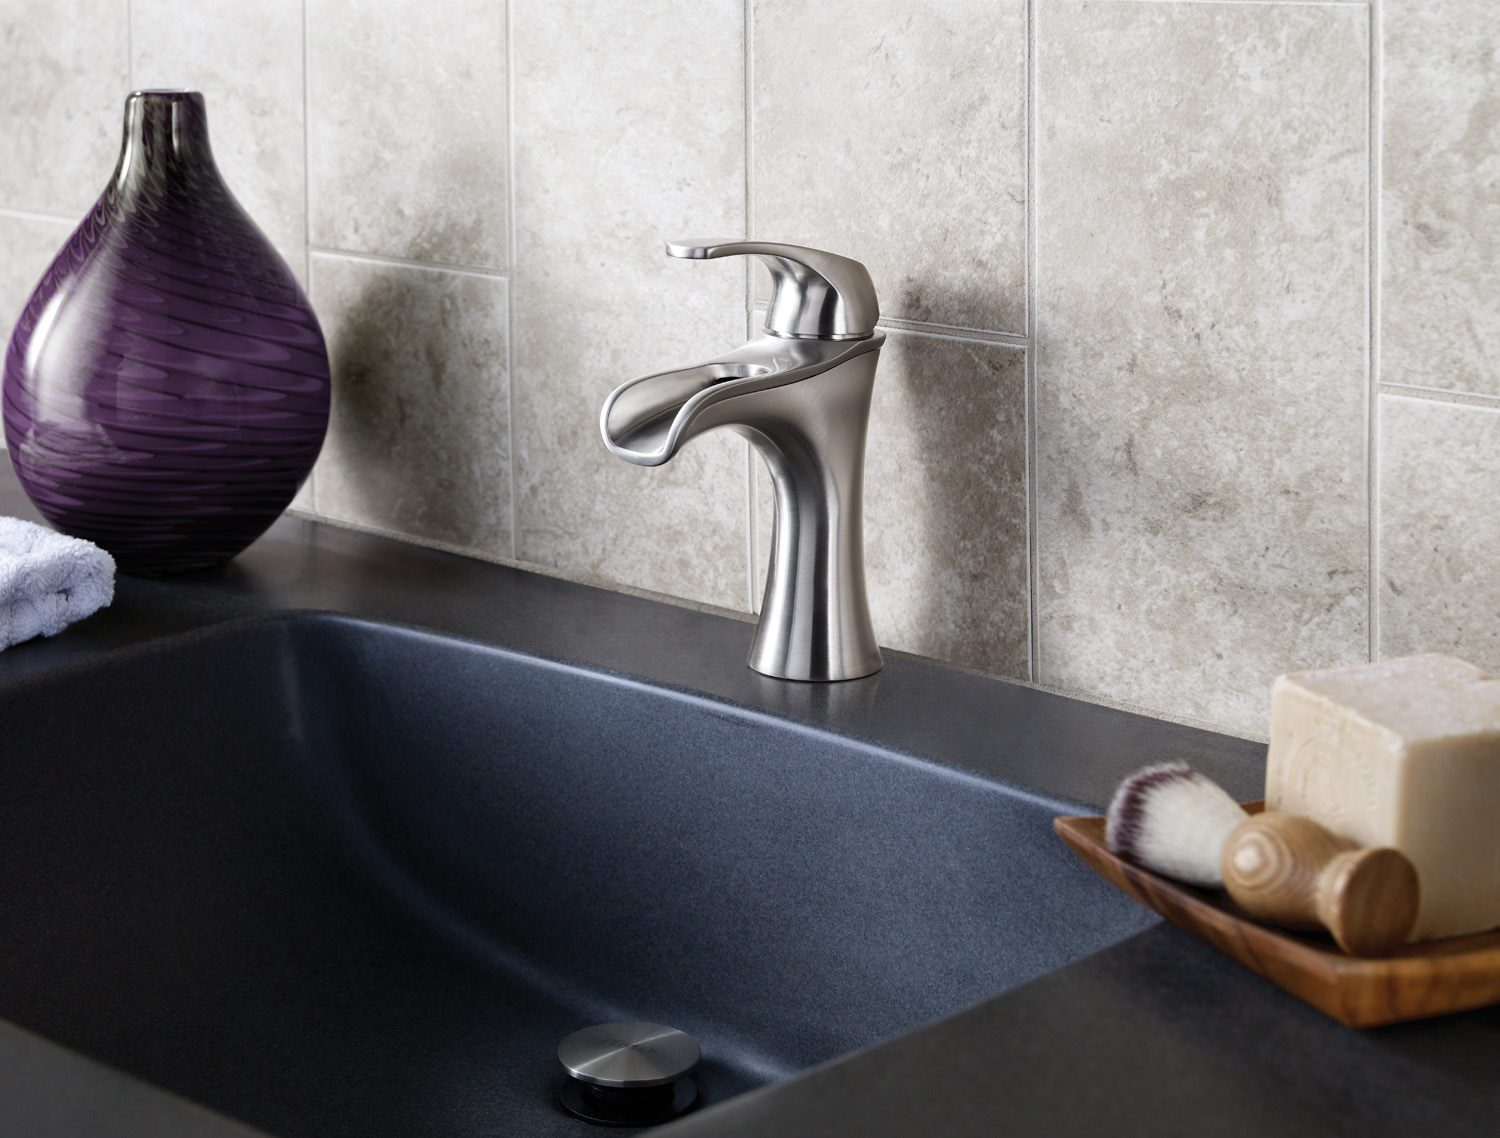 Selia has been praised as one of Pfister s most versatile designs to date. Pfister  Introduces Three New Bath Faucet Designs